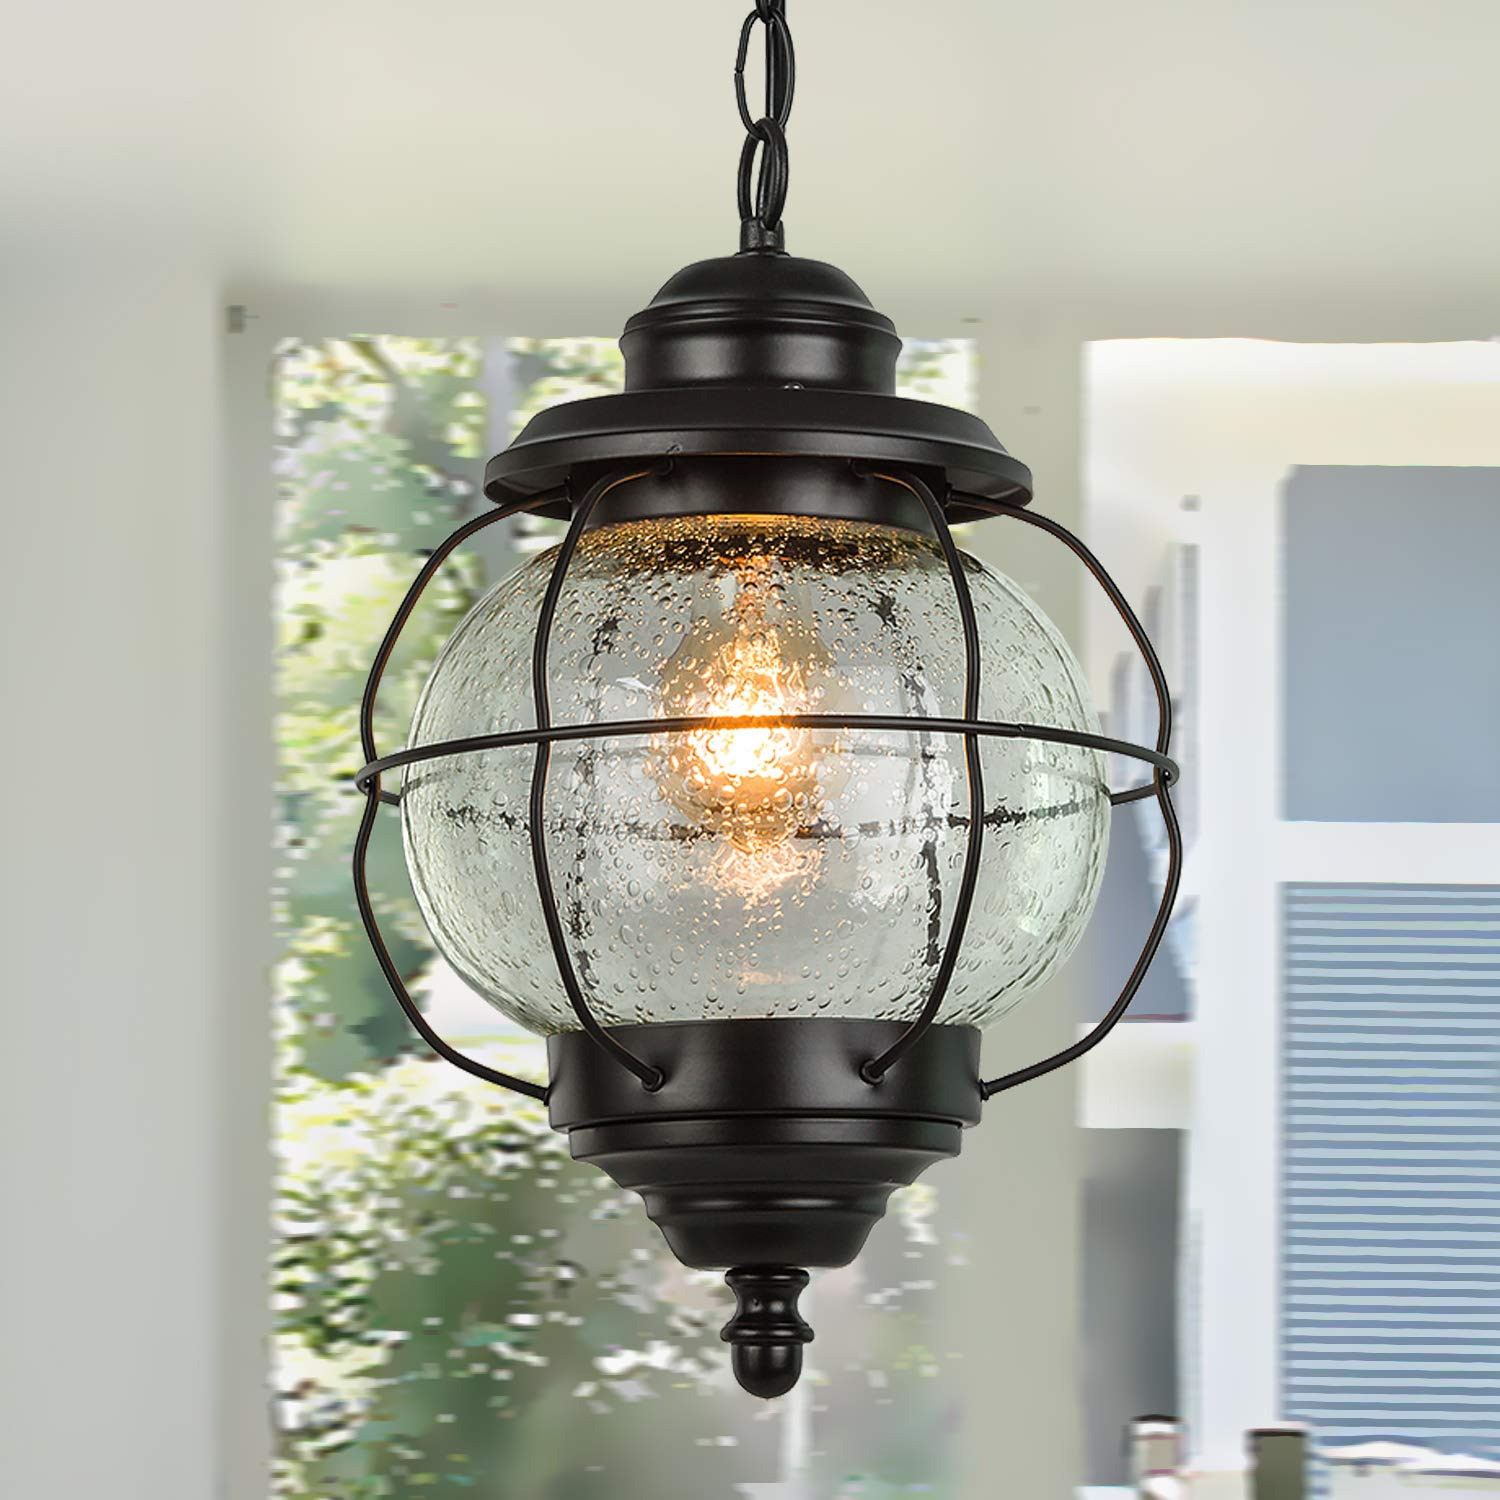 LALUZ 1 Light Outdoor Hanging Lantern Porch Light in Painted Black Metal with Clear Bubbled Glass Globe in Iron Cage Frame, 10.2'' Exterior Pendant Lighting for Garage by LALUZ